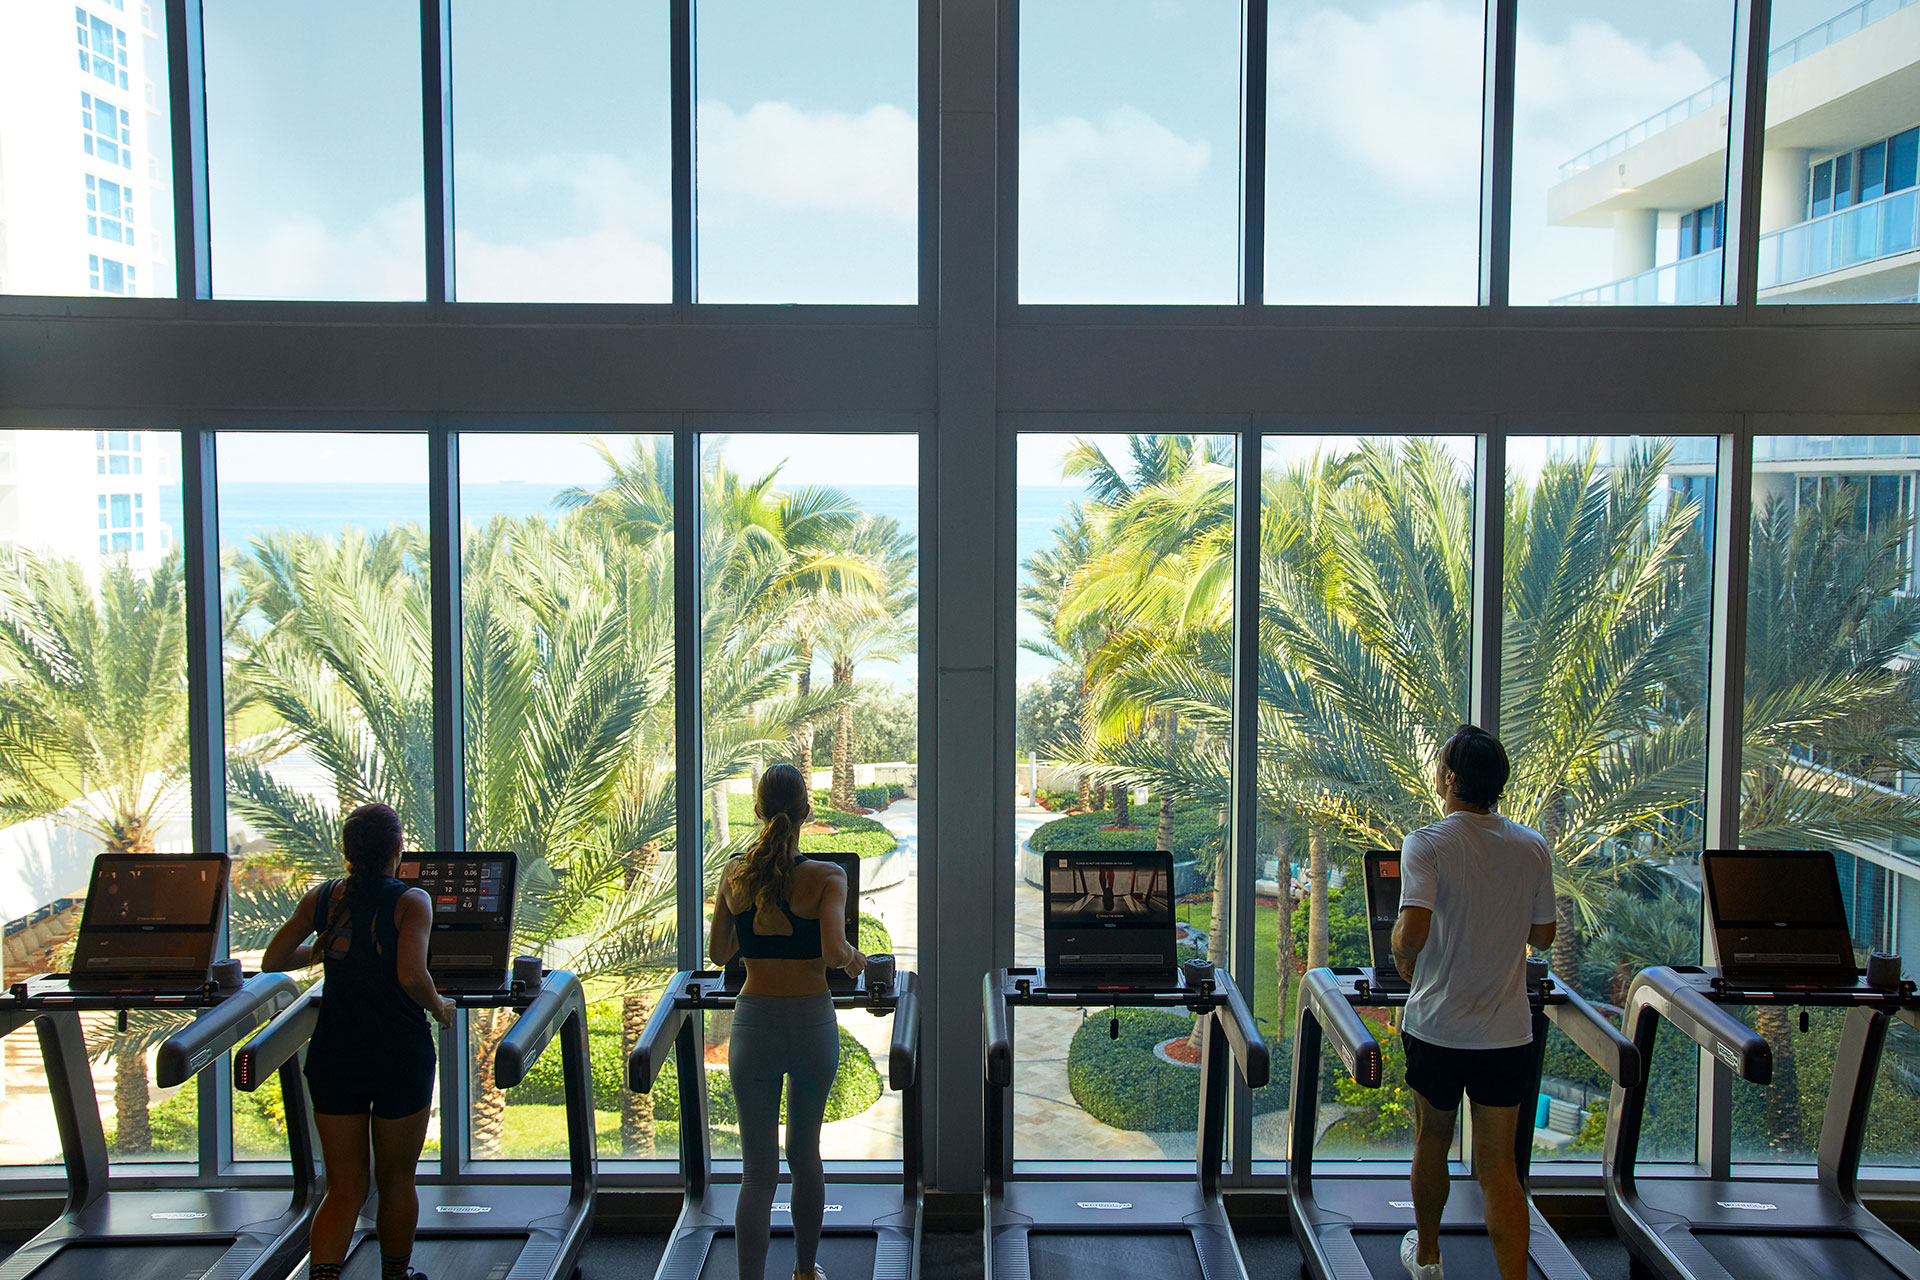 Image of the gym facilities. The shot focuses on the treadmills. There are six treadmills lined against full length windoes with a video of a courtyard that leads to the beach. There are three people in workout outfits running on the treadmills, two woman and one man.